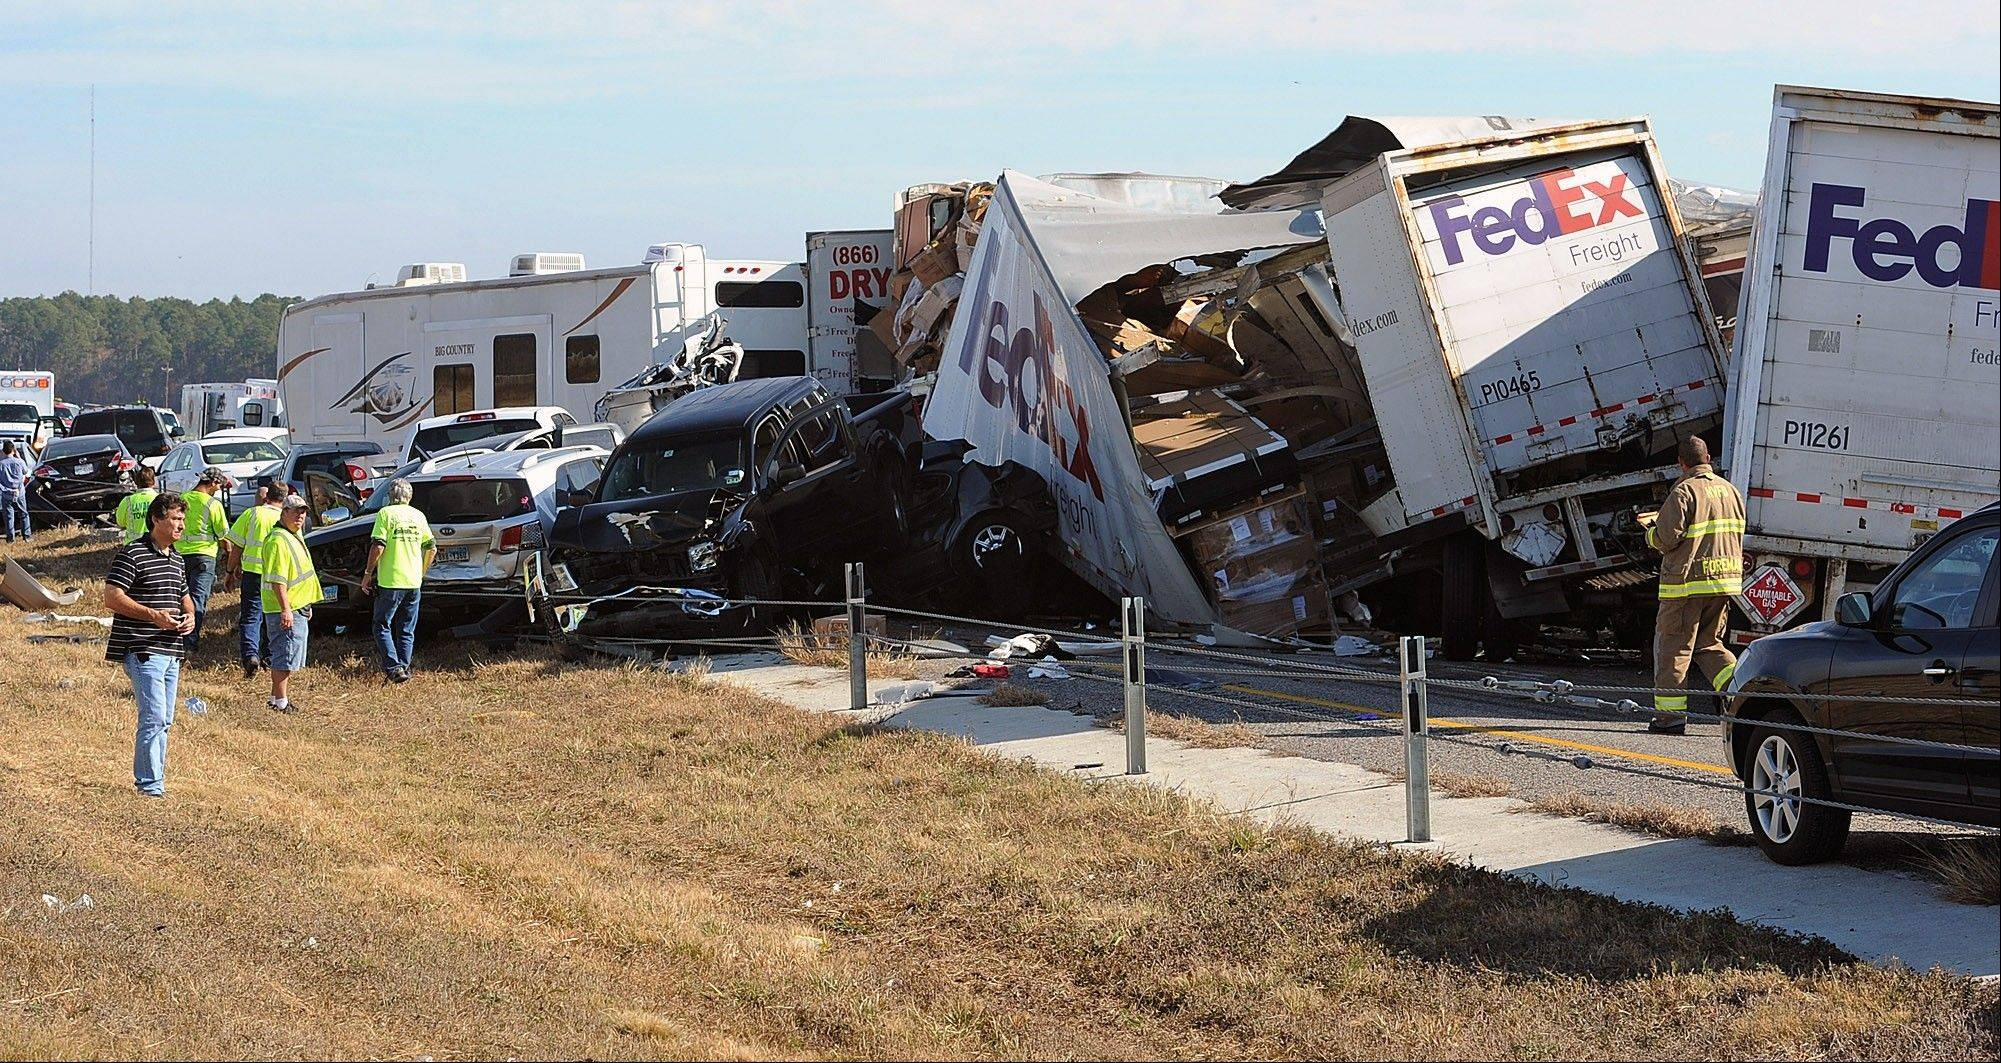 Cars and Trucks are piled on Interstate 10 in Southeast Texas Thursday. Two people died and dozens were hurt Thursday when at least 100 vehicles collided in Southeast Texas in a pileup that left trucks twisted on top of each other and authorities rushing to pull survivors from the miles of wreckage.